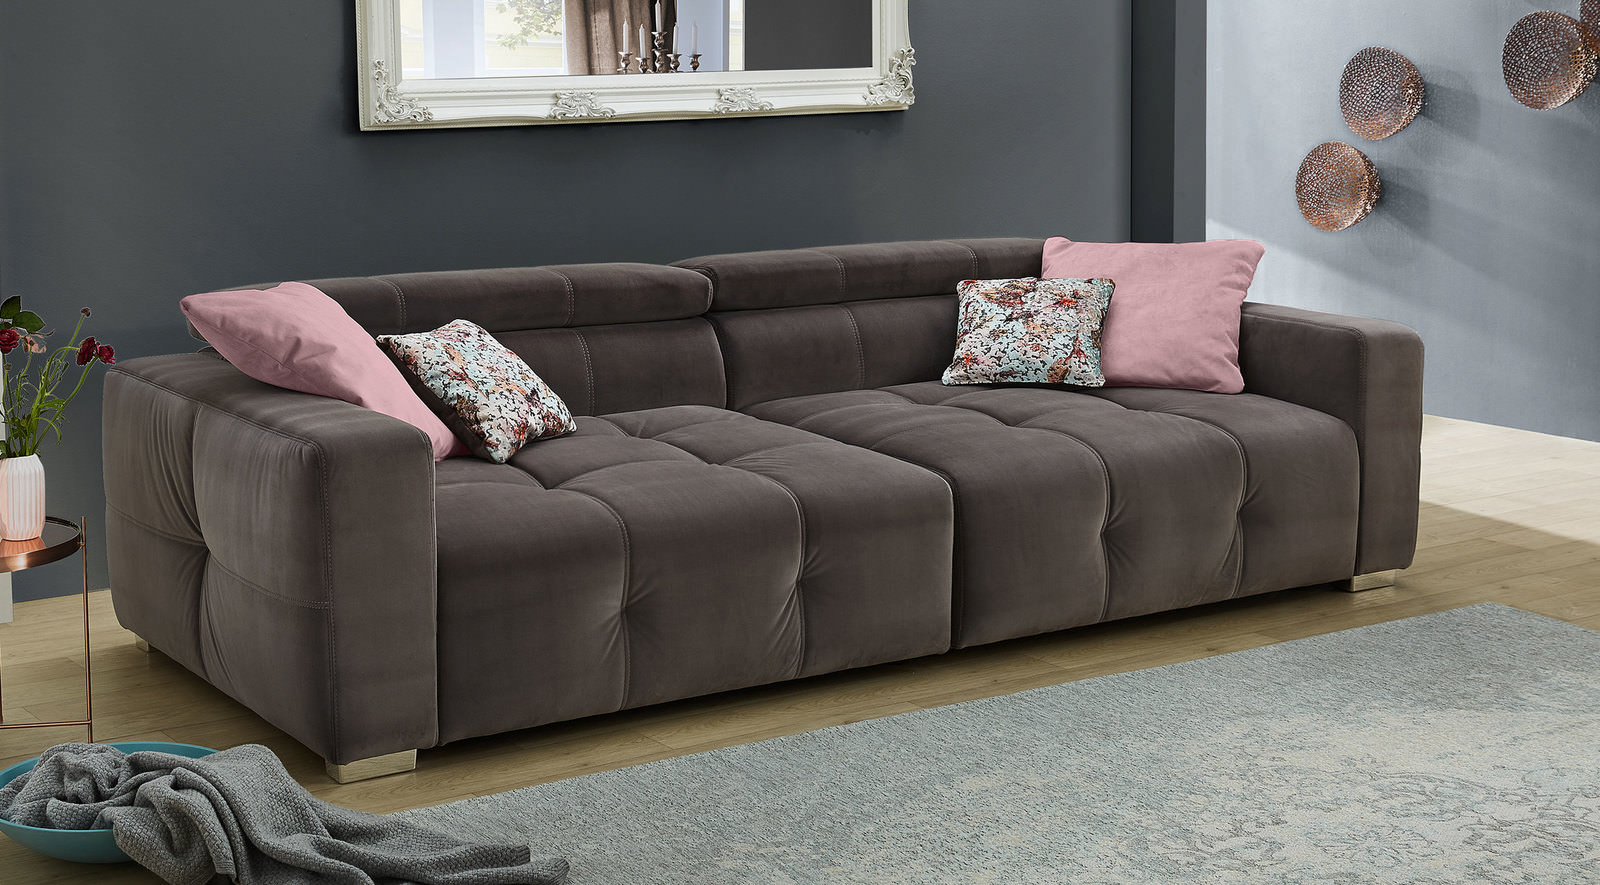 Sofa Artikel Sofa Welcher Artikel | Baci Living Room